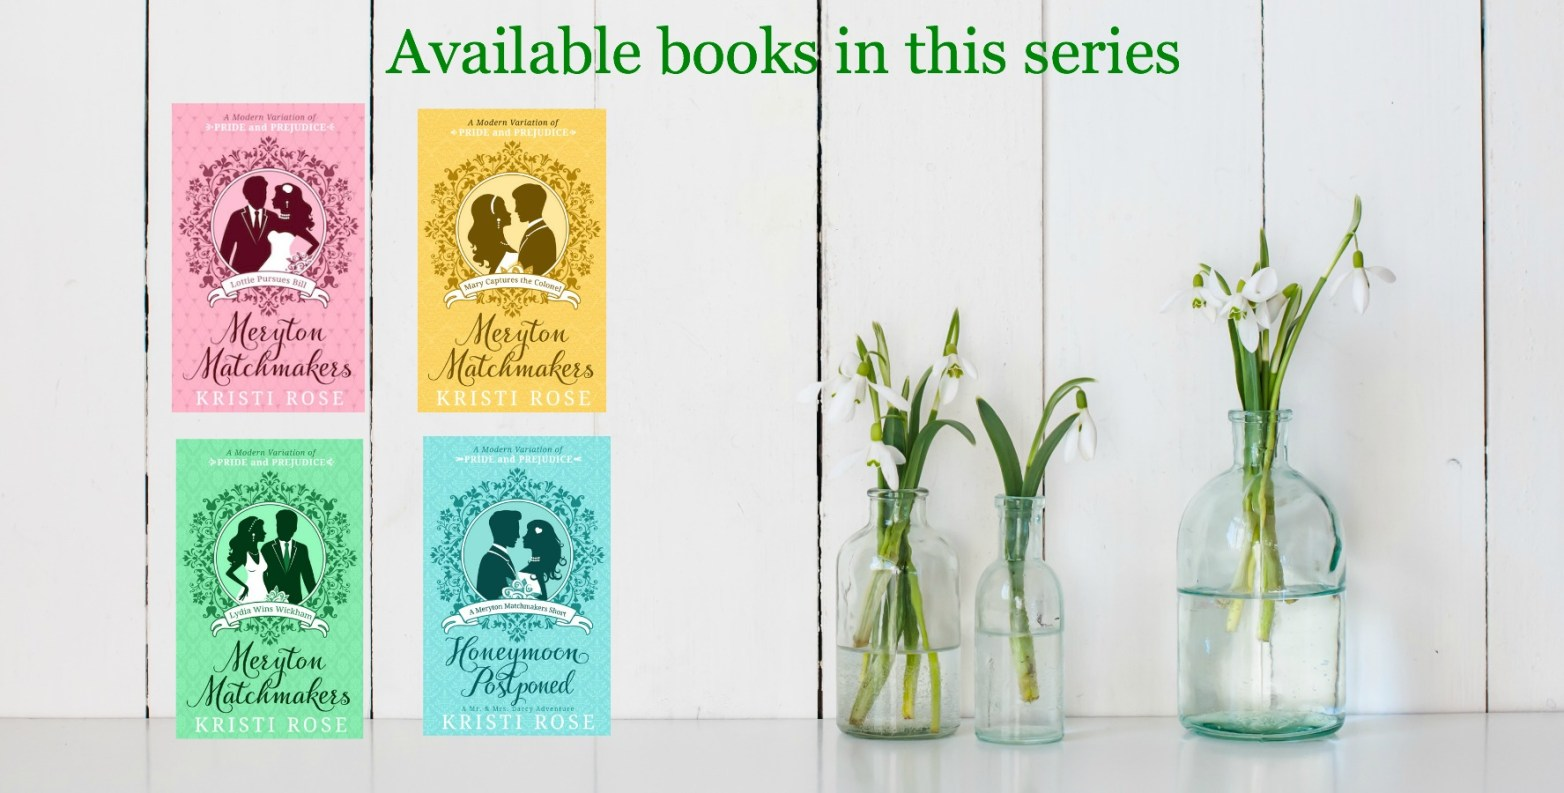 Avail books banner 1